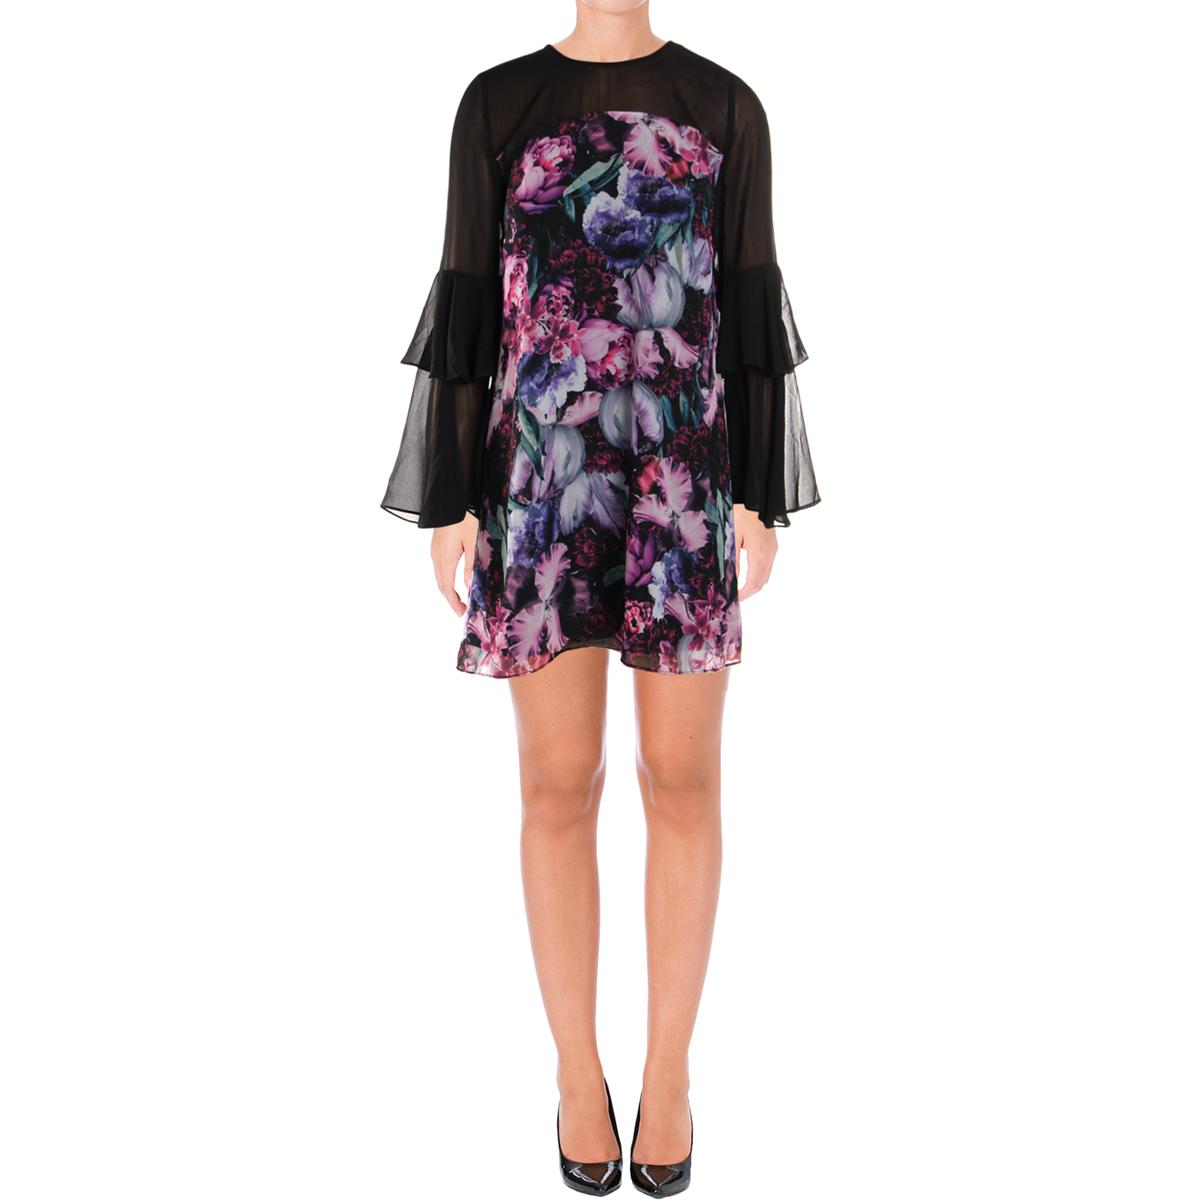 CeCe Womens Ruffled Floral Print Long Sleeve Party Dress BHFO 7762